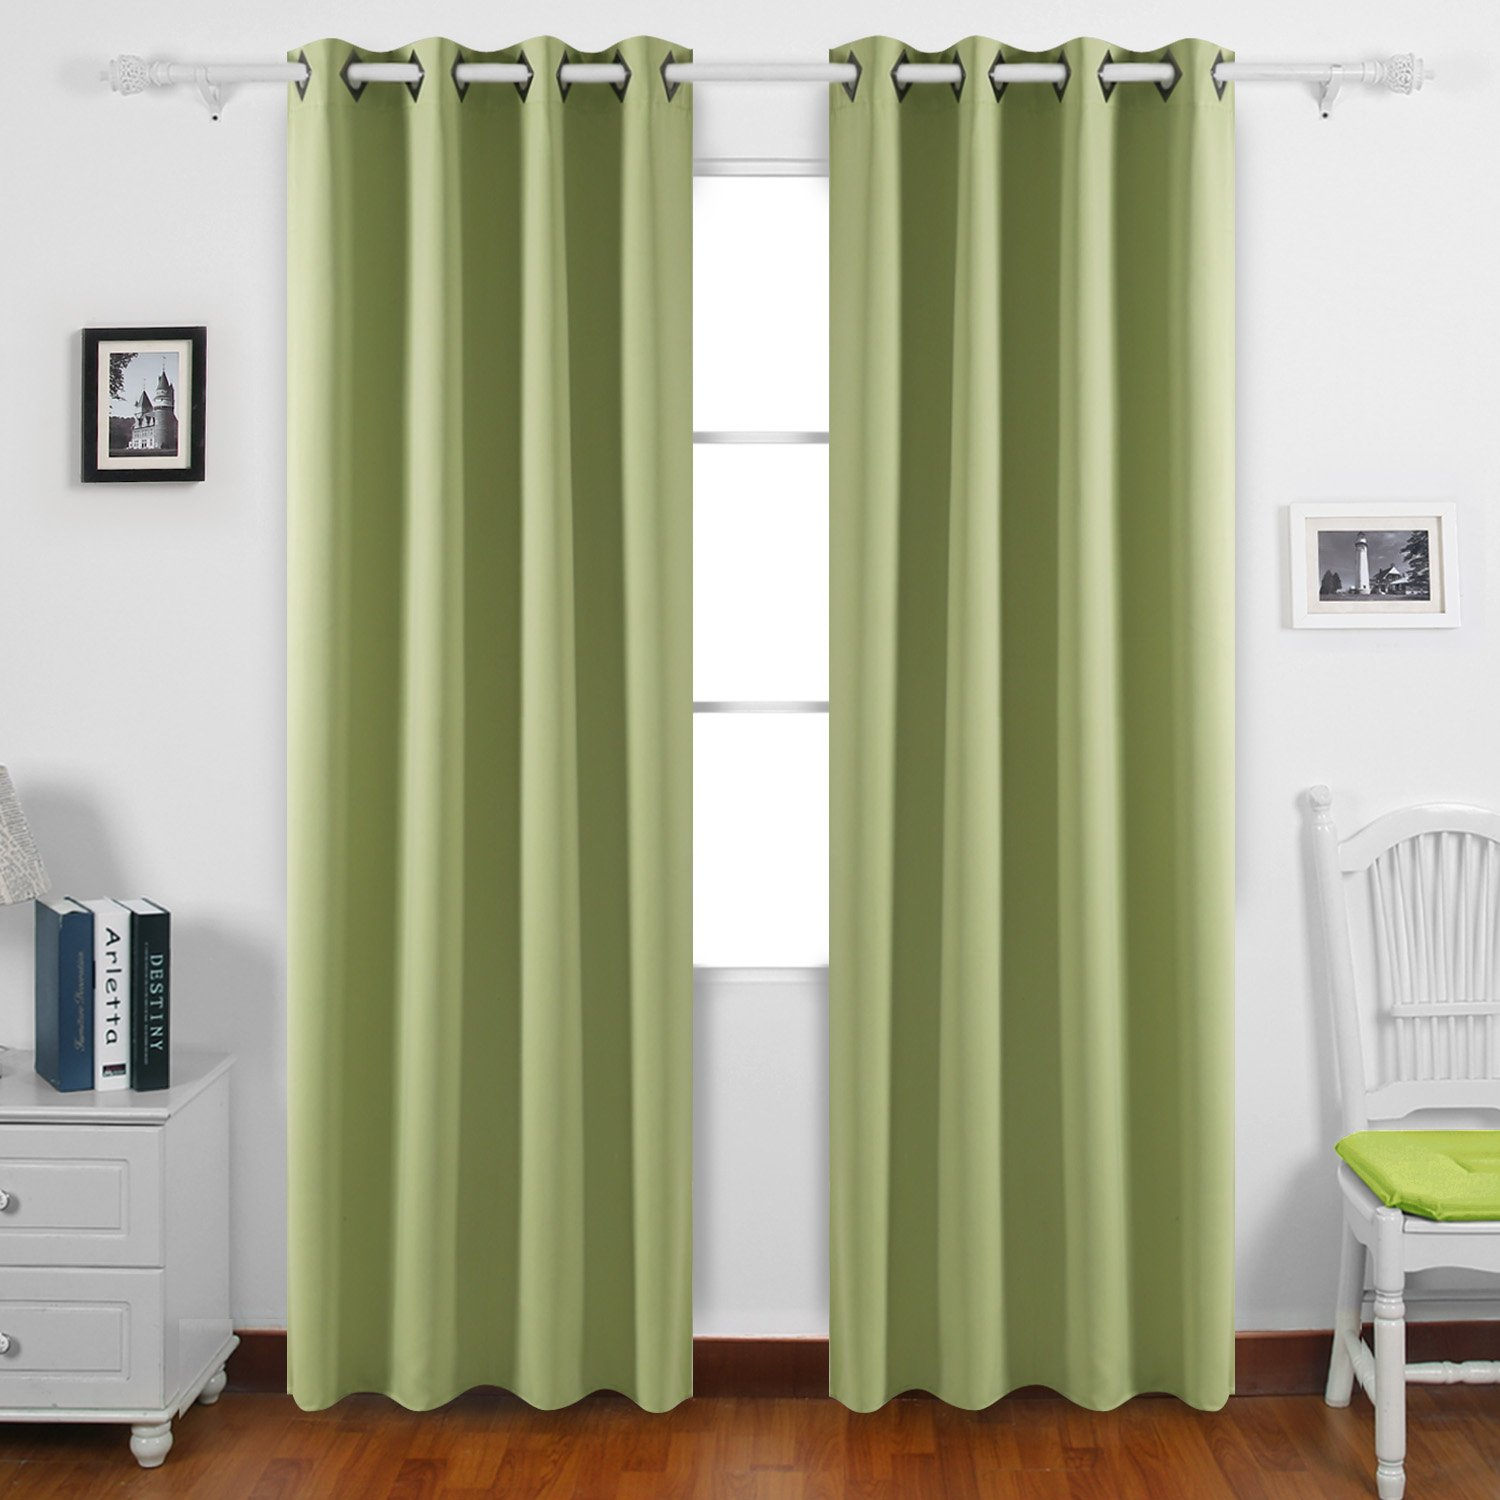 Deconovo Room Darkening Panels Thermal Blackout Curtains Grommet Insulated Curtains for Store